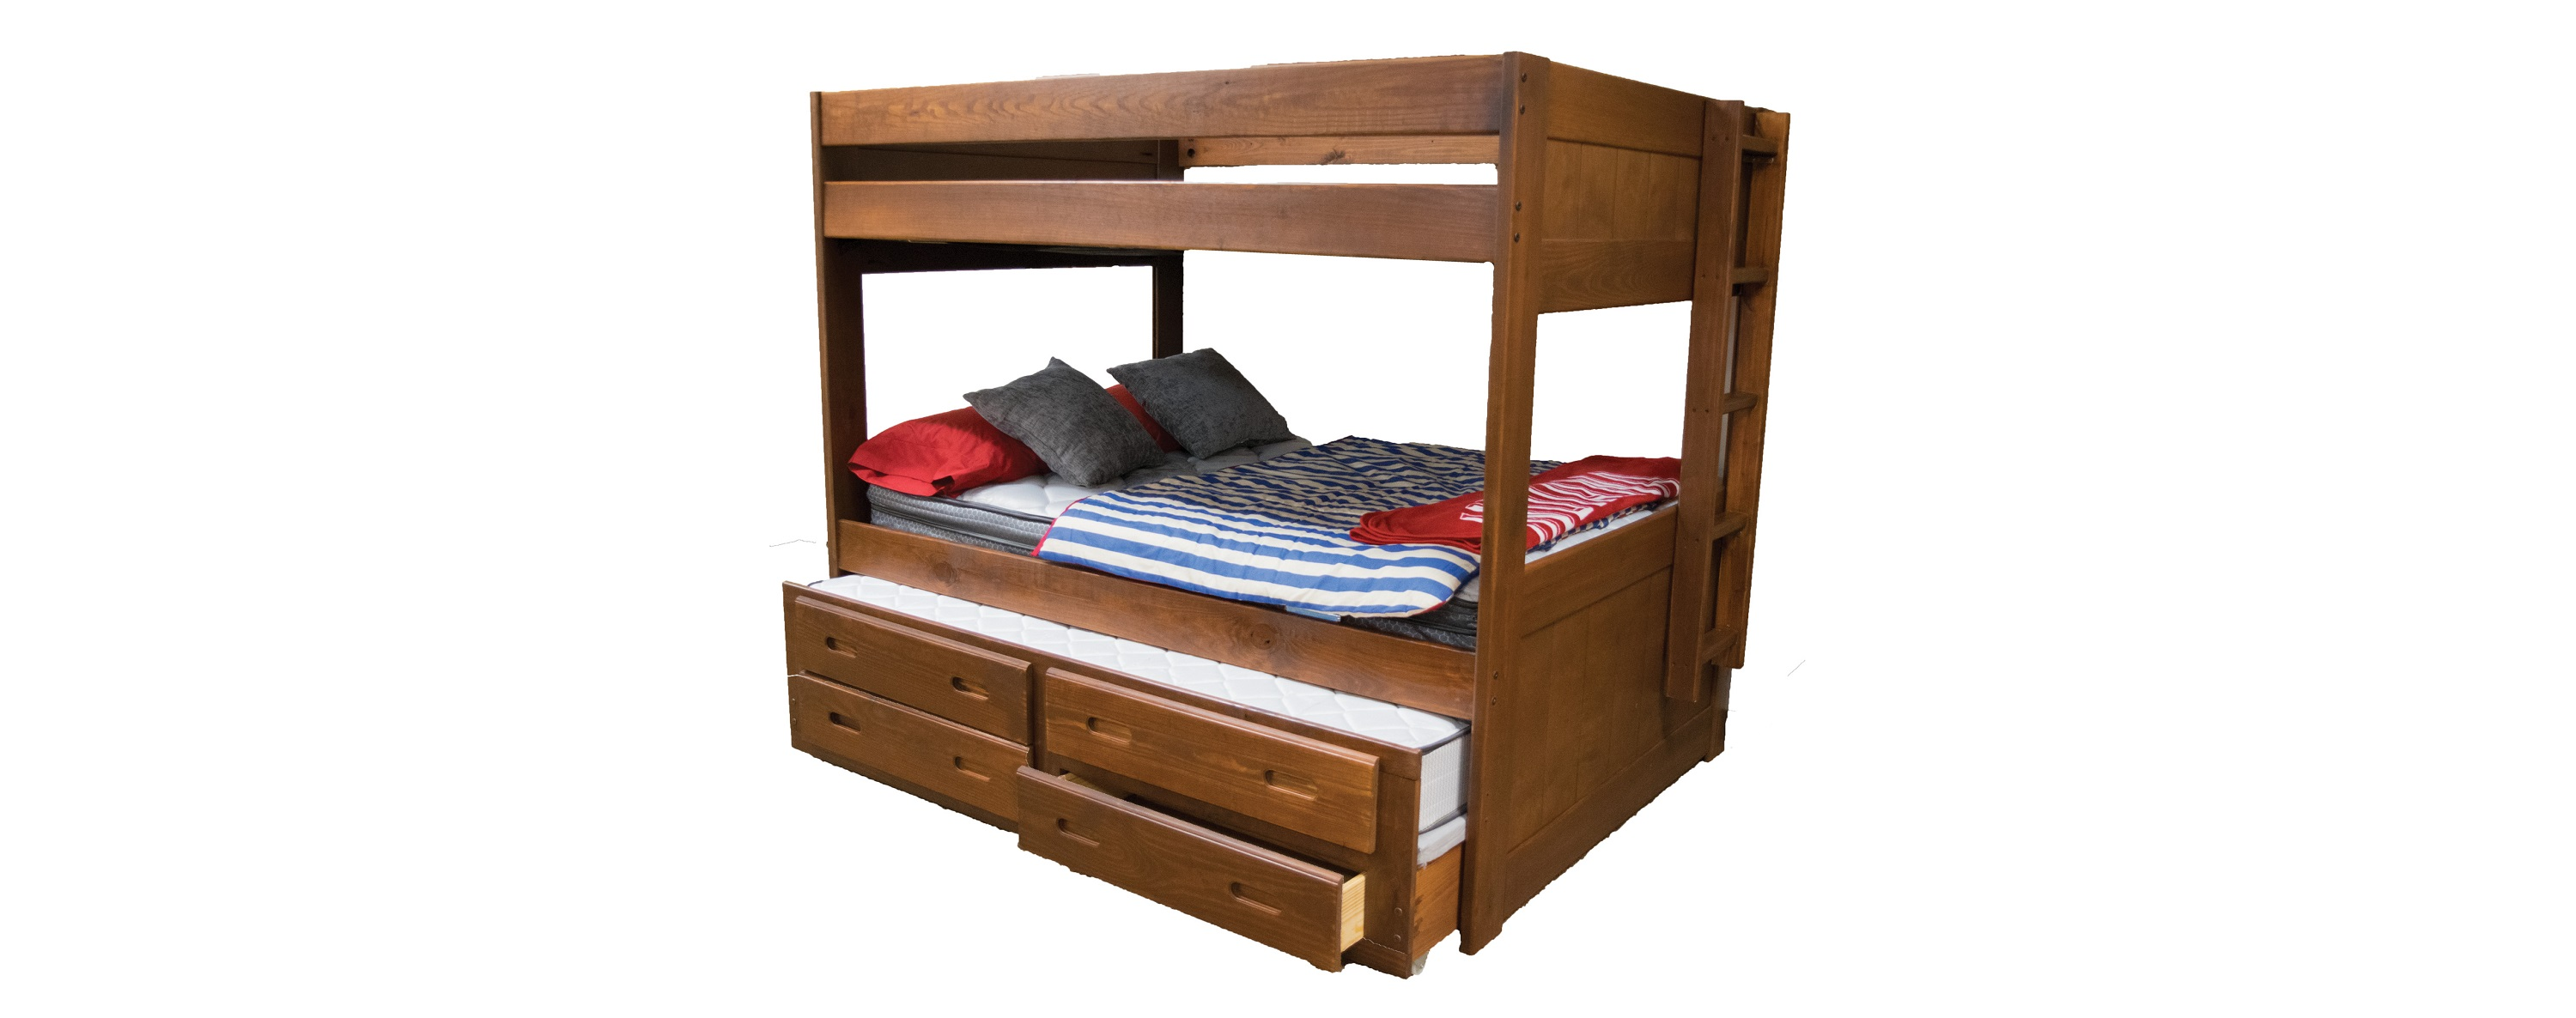 Simply Bunk Beds 226 Full Full Bunk Beds